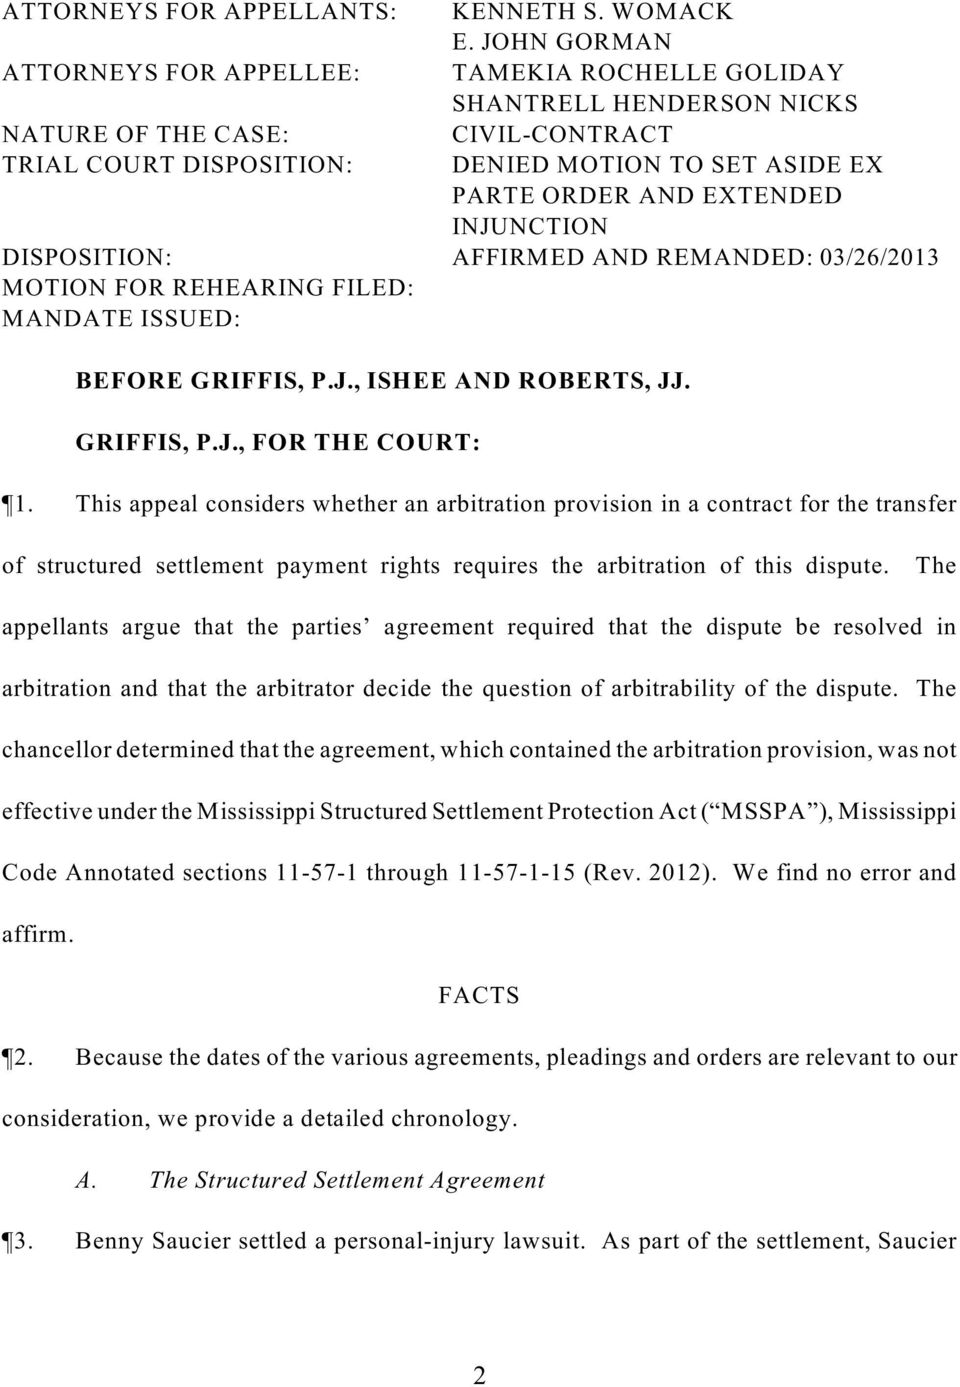 FOR REHEARING FILED: MANDATE ISSUED: BEFORE GRIFFIS, P.J., ISHEE AND ROBERTS, JJ. GRIFFIS, P.J., FOR THE COURT: 1.